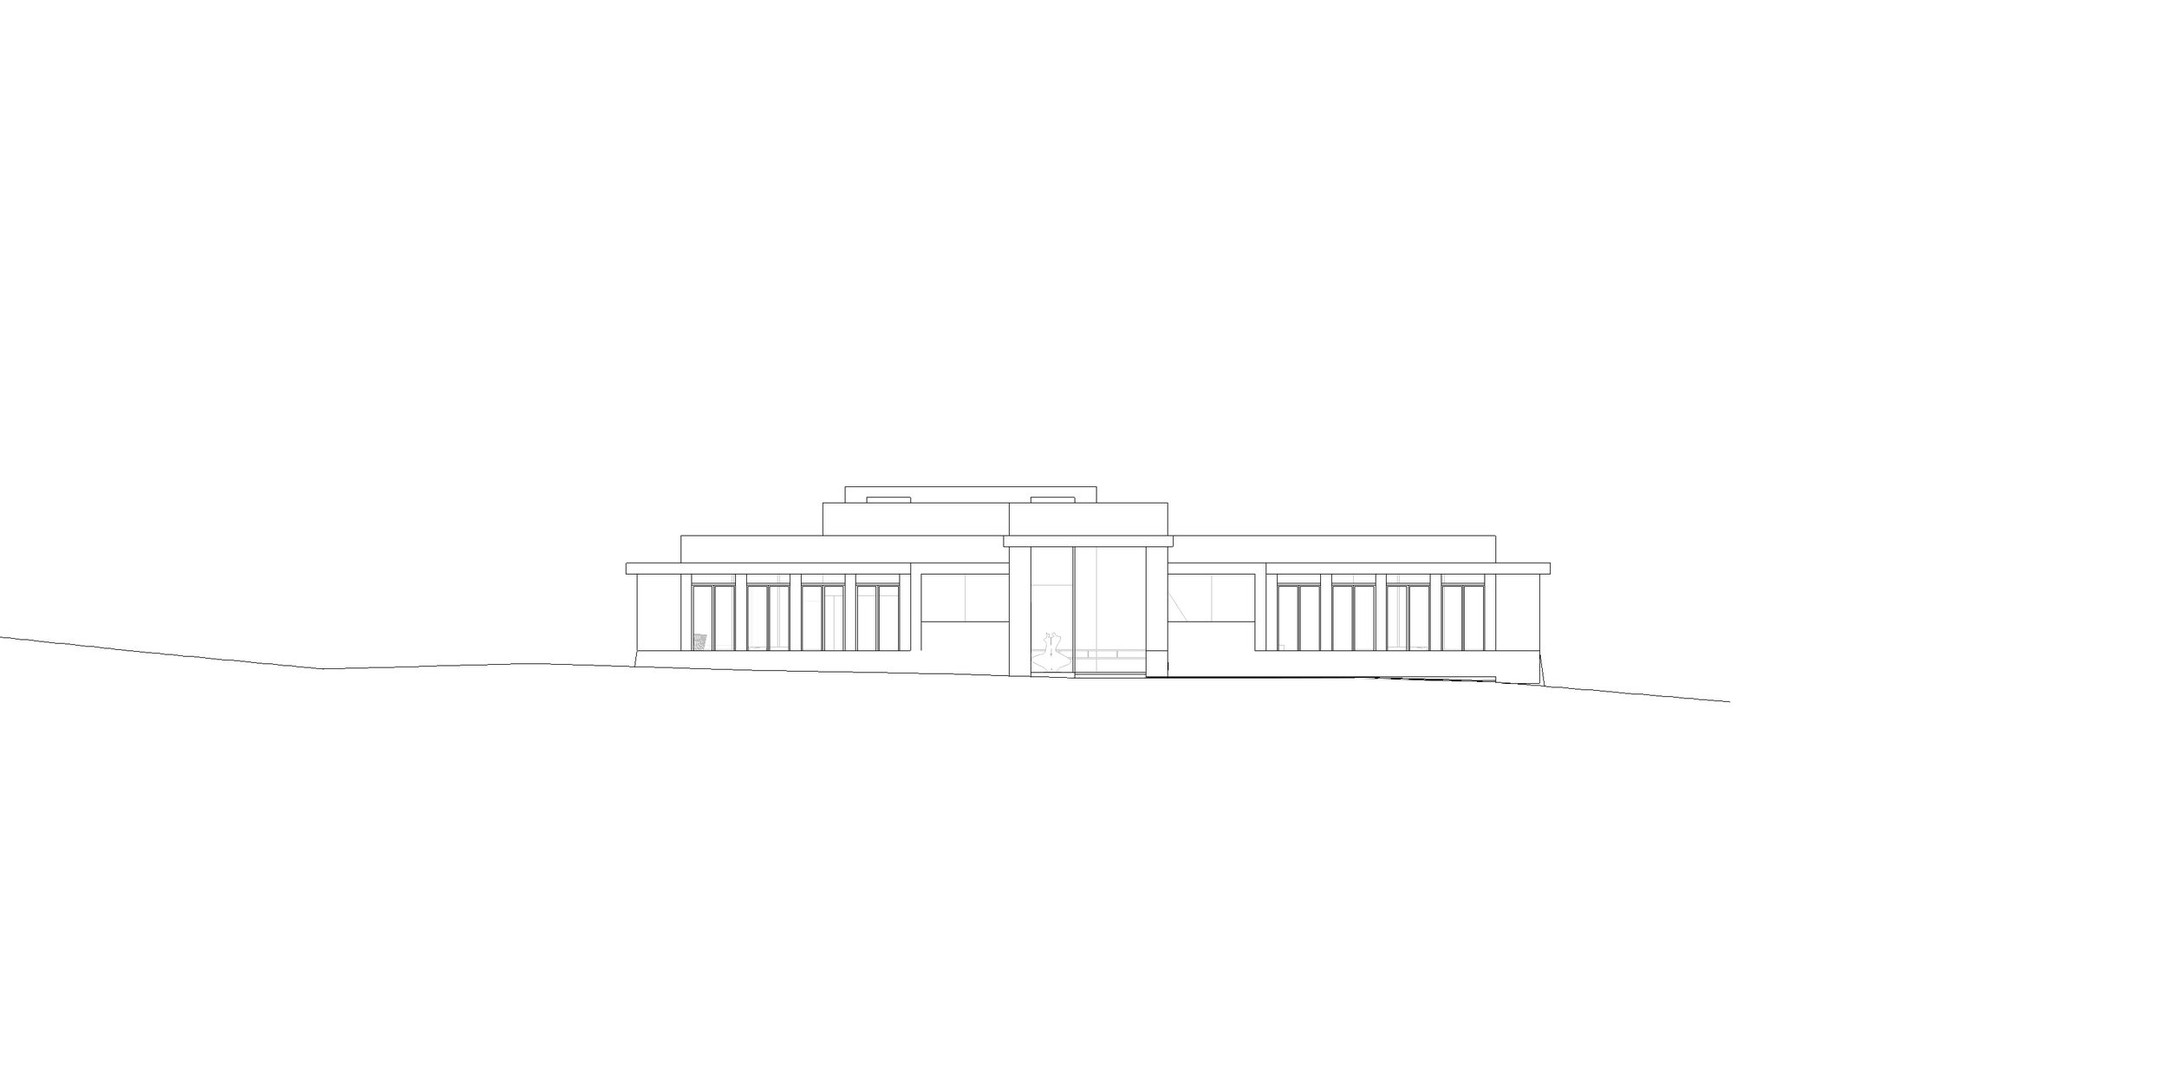 LA CANADA FLINTRIDGE RESIDENCE - NORTH ELEVATION